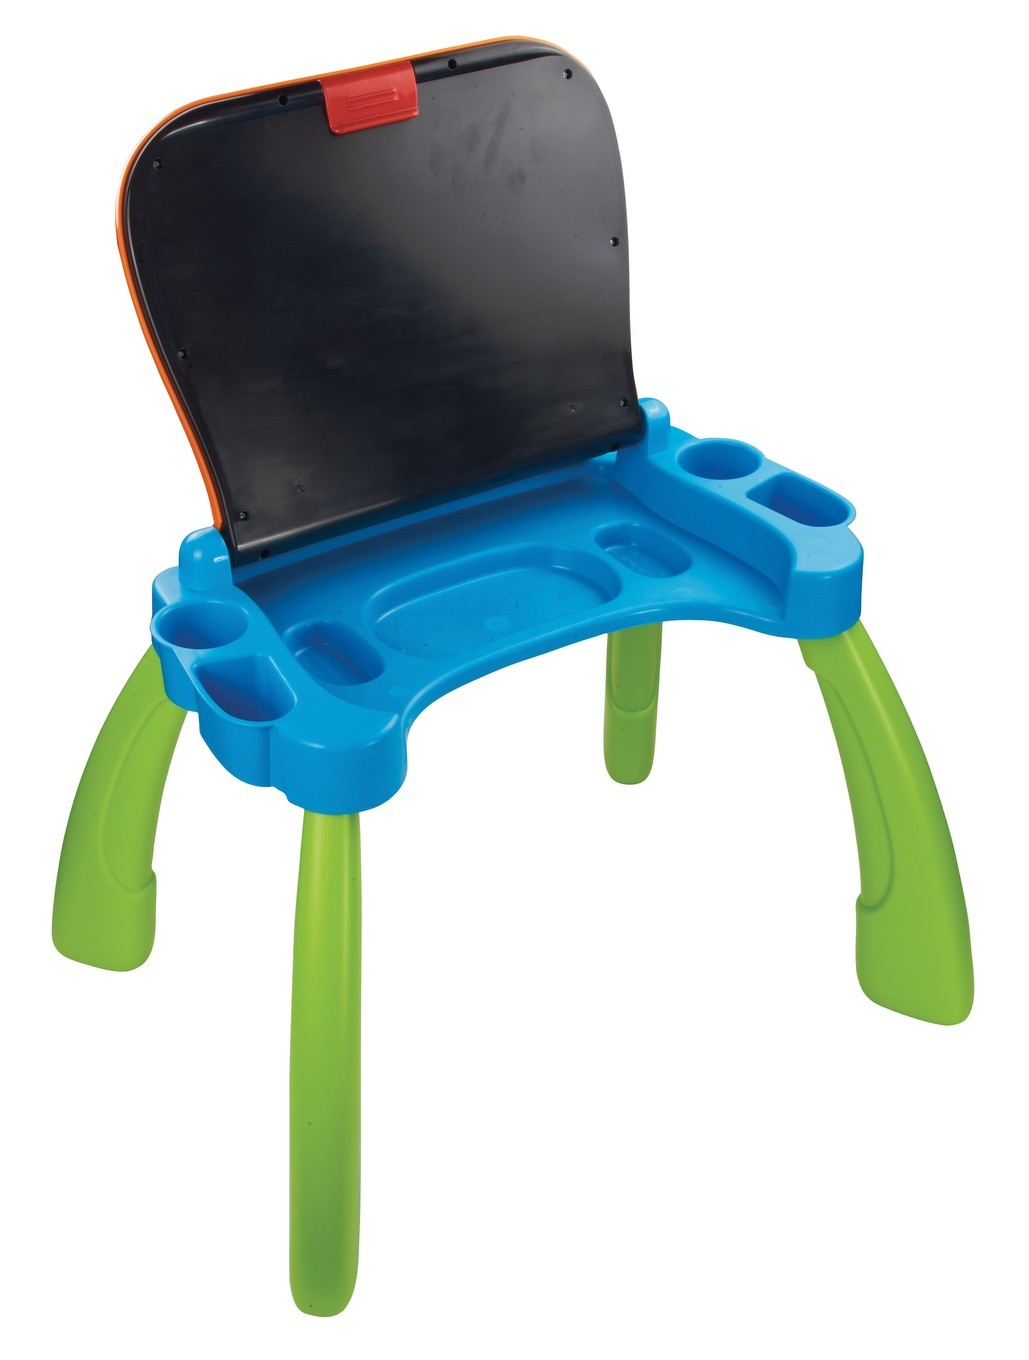 Vtech: Touch & Learn - Interactive Learning Desk image